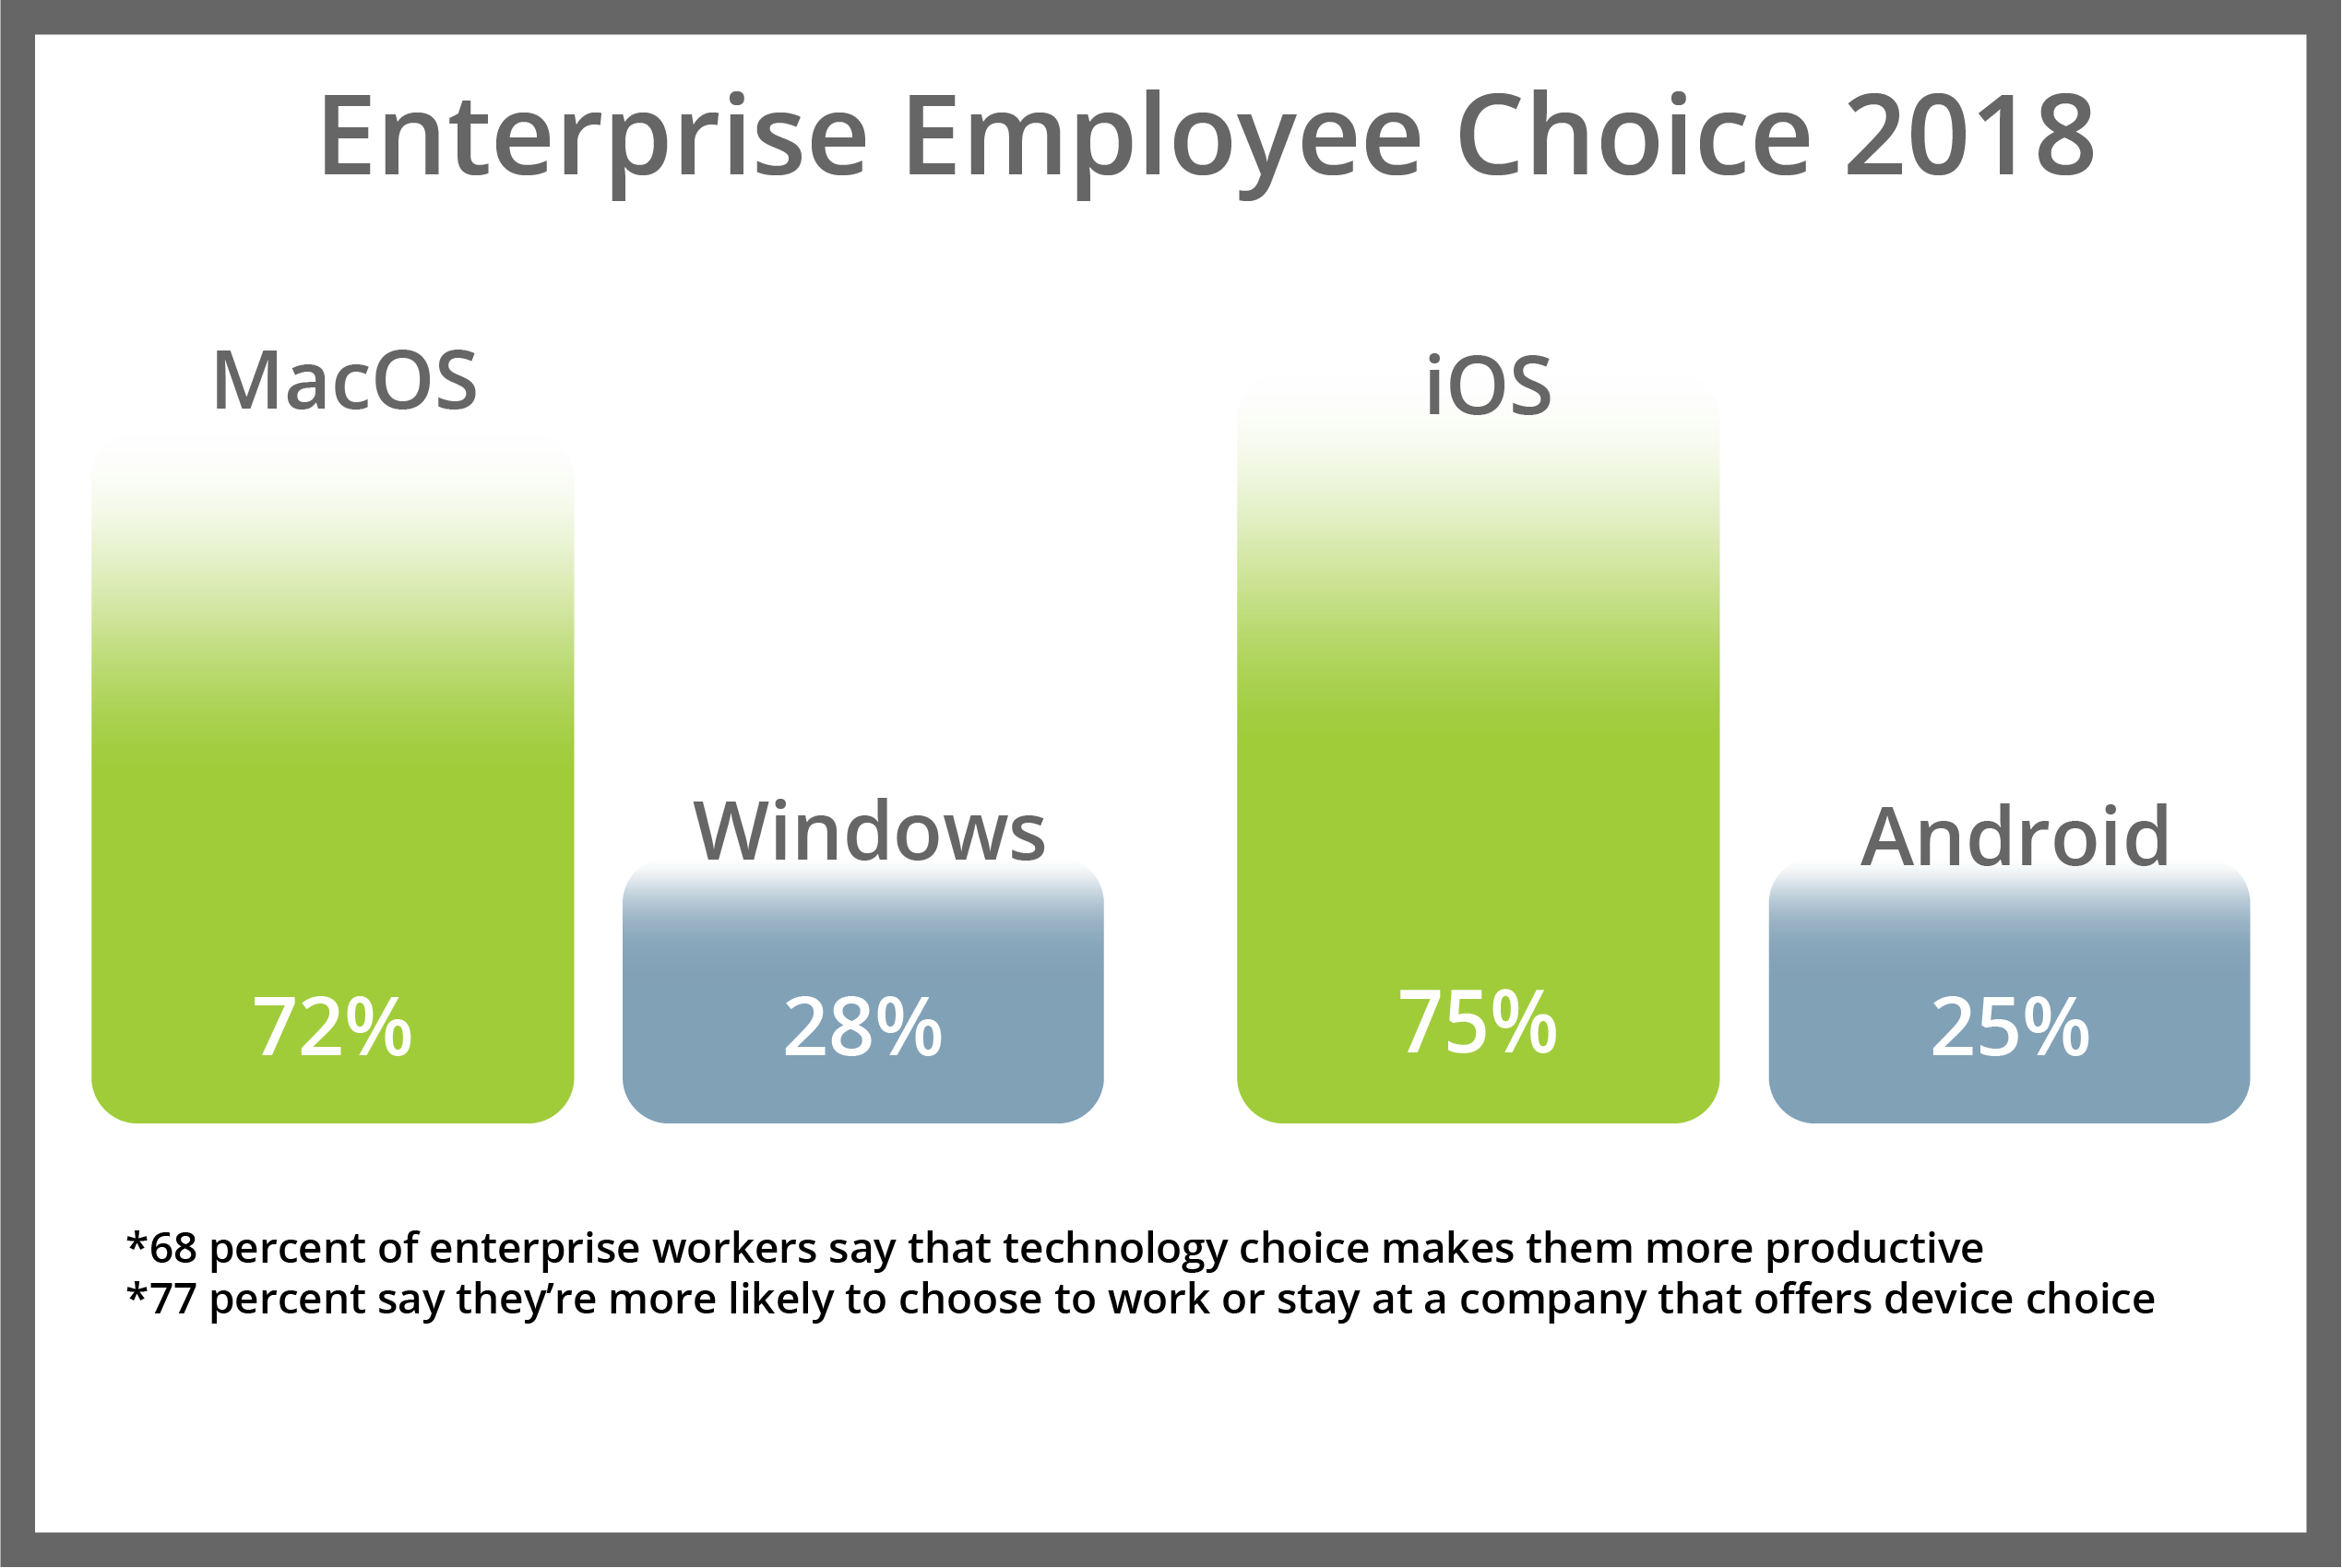 Employee Choice 2018